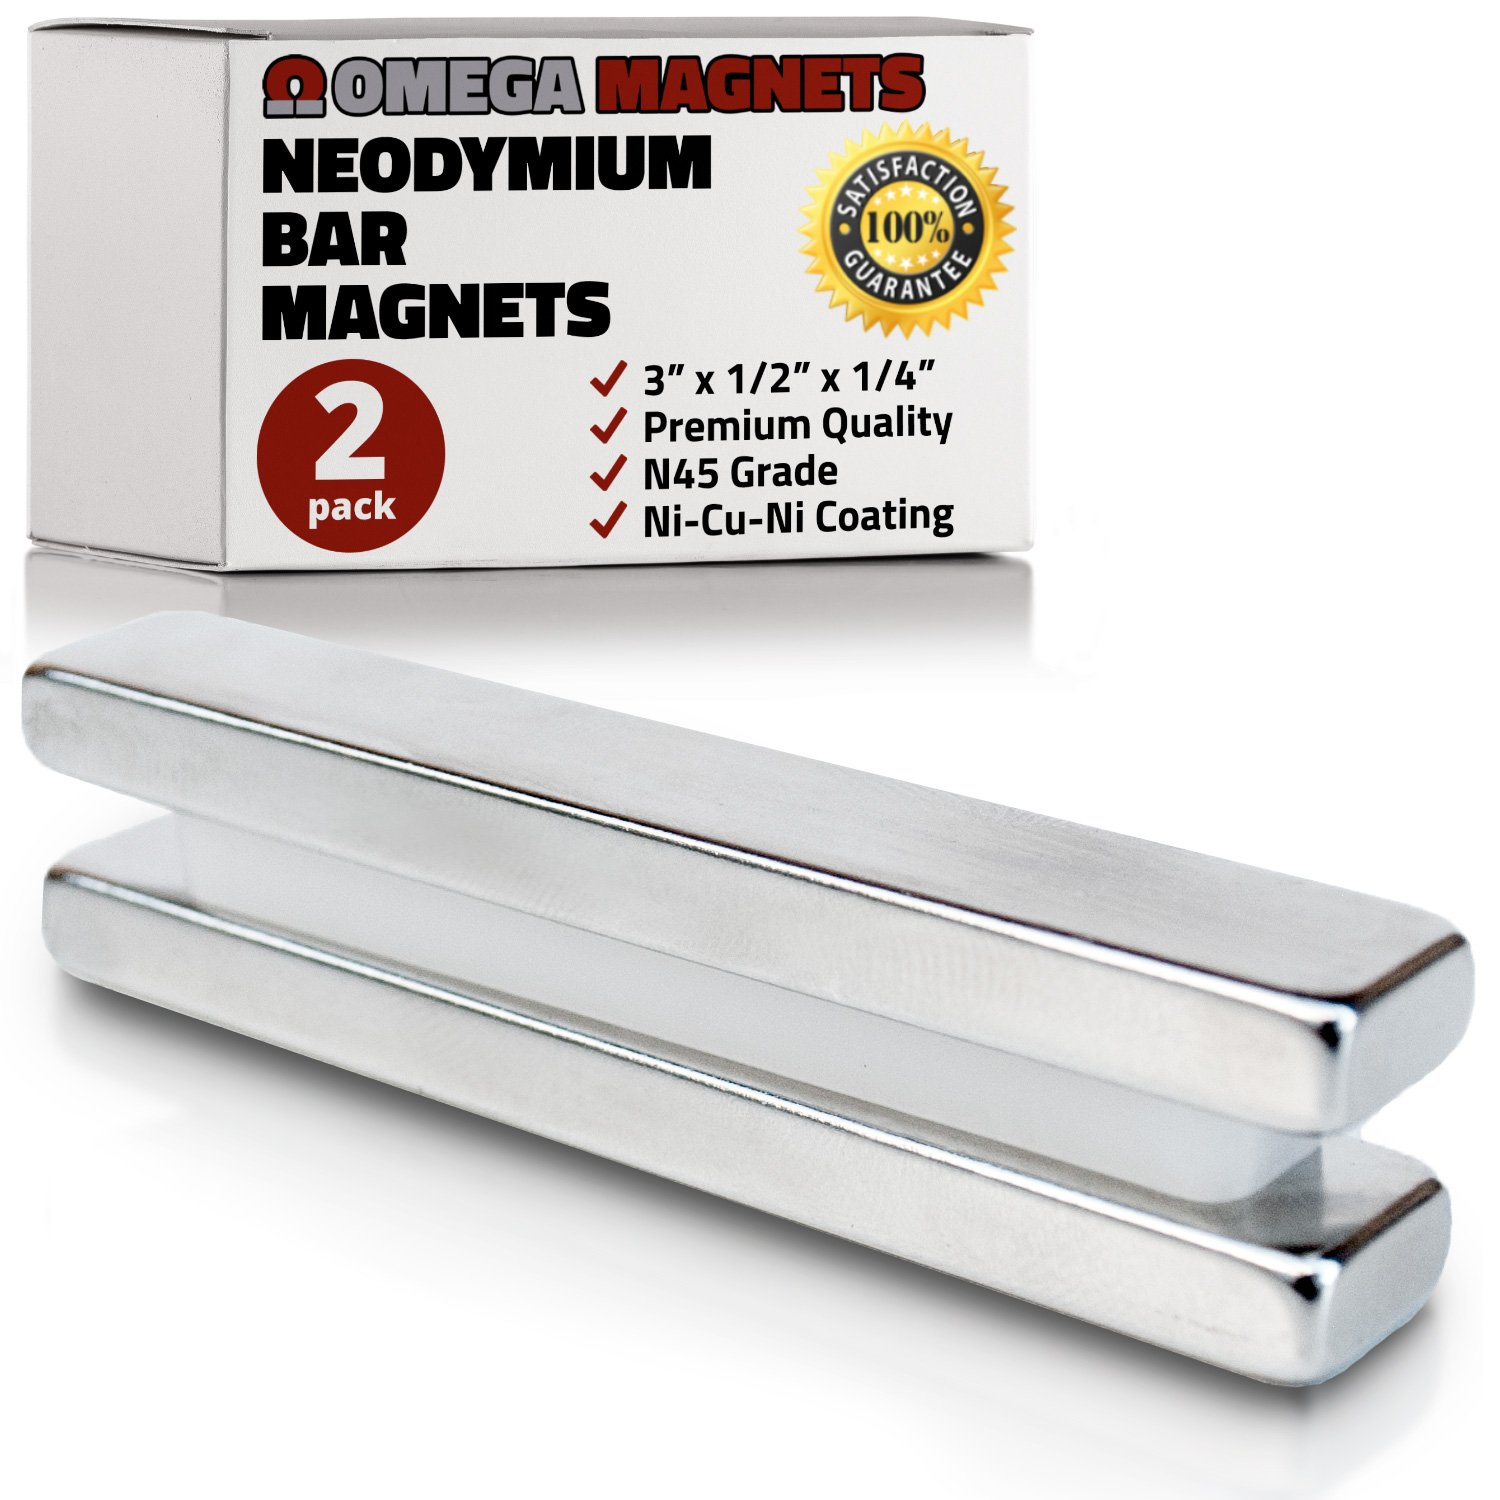 """Strong Neodymium Bar Magnets (2 Pack) - Powerful, Rectangular Rare Earth Magnets - N45 Industrial Strength NdFeB Block Magnet Set for Misti, DIY, Crafts - 3"""" x 1/2"""" x 1/4"""""""